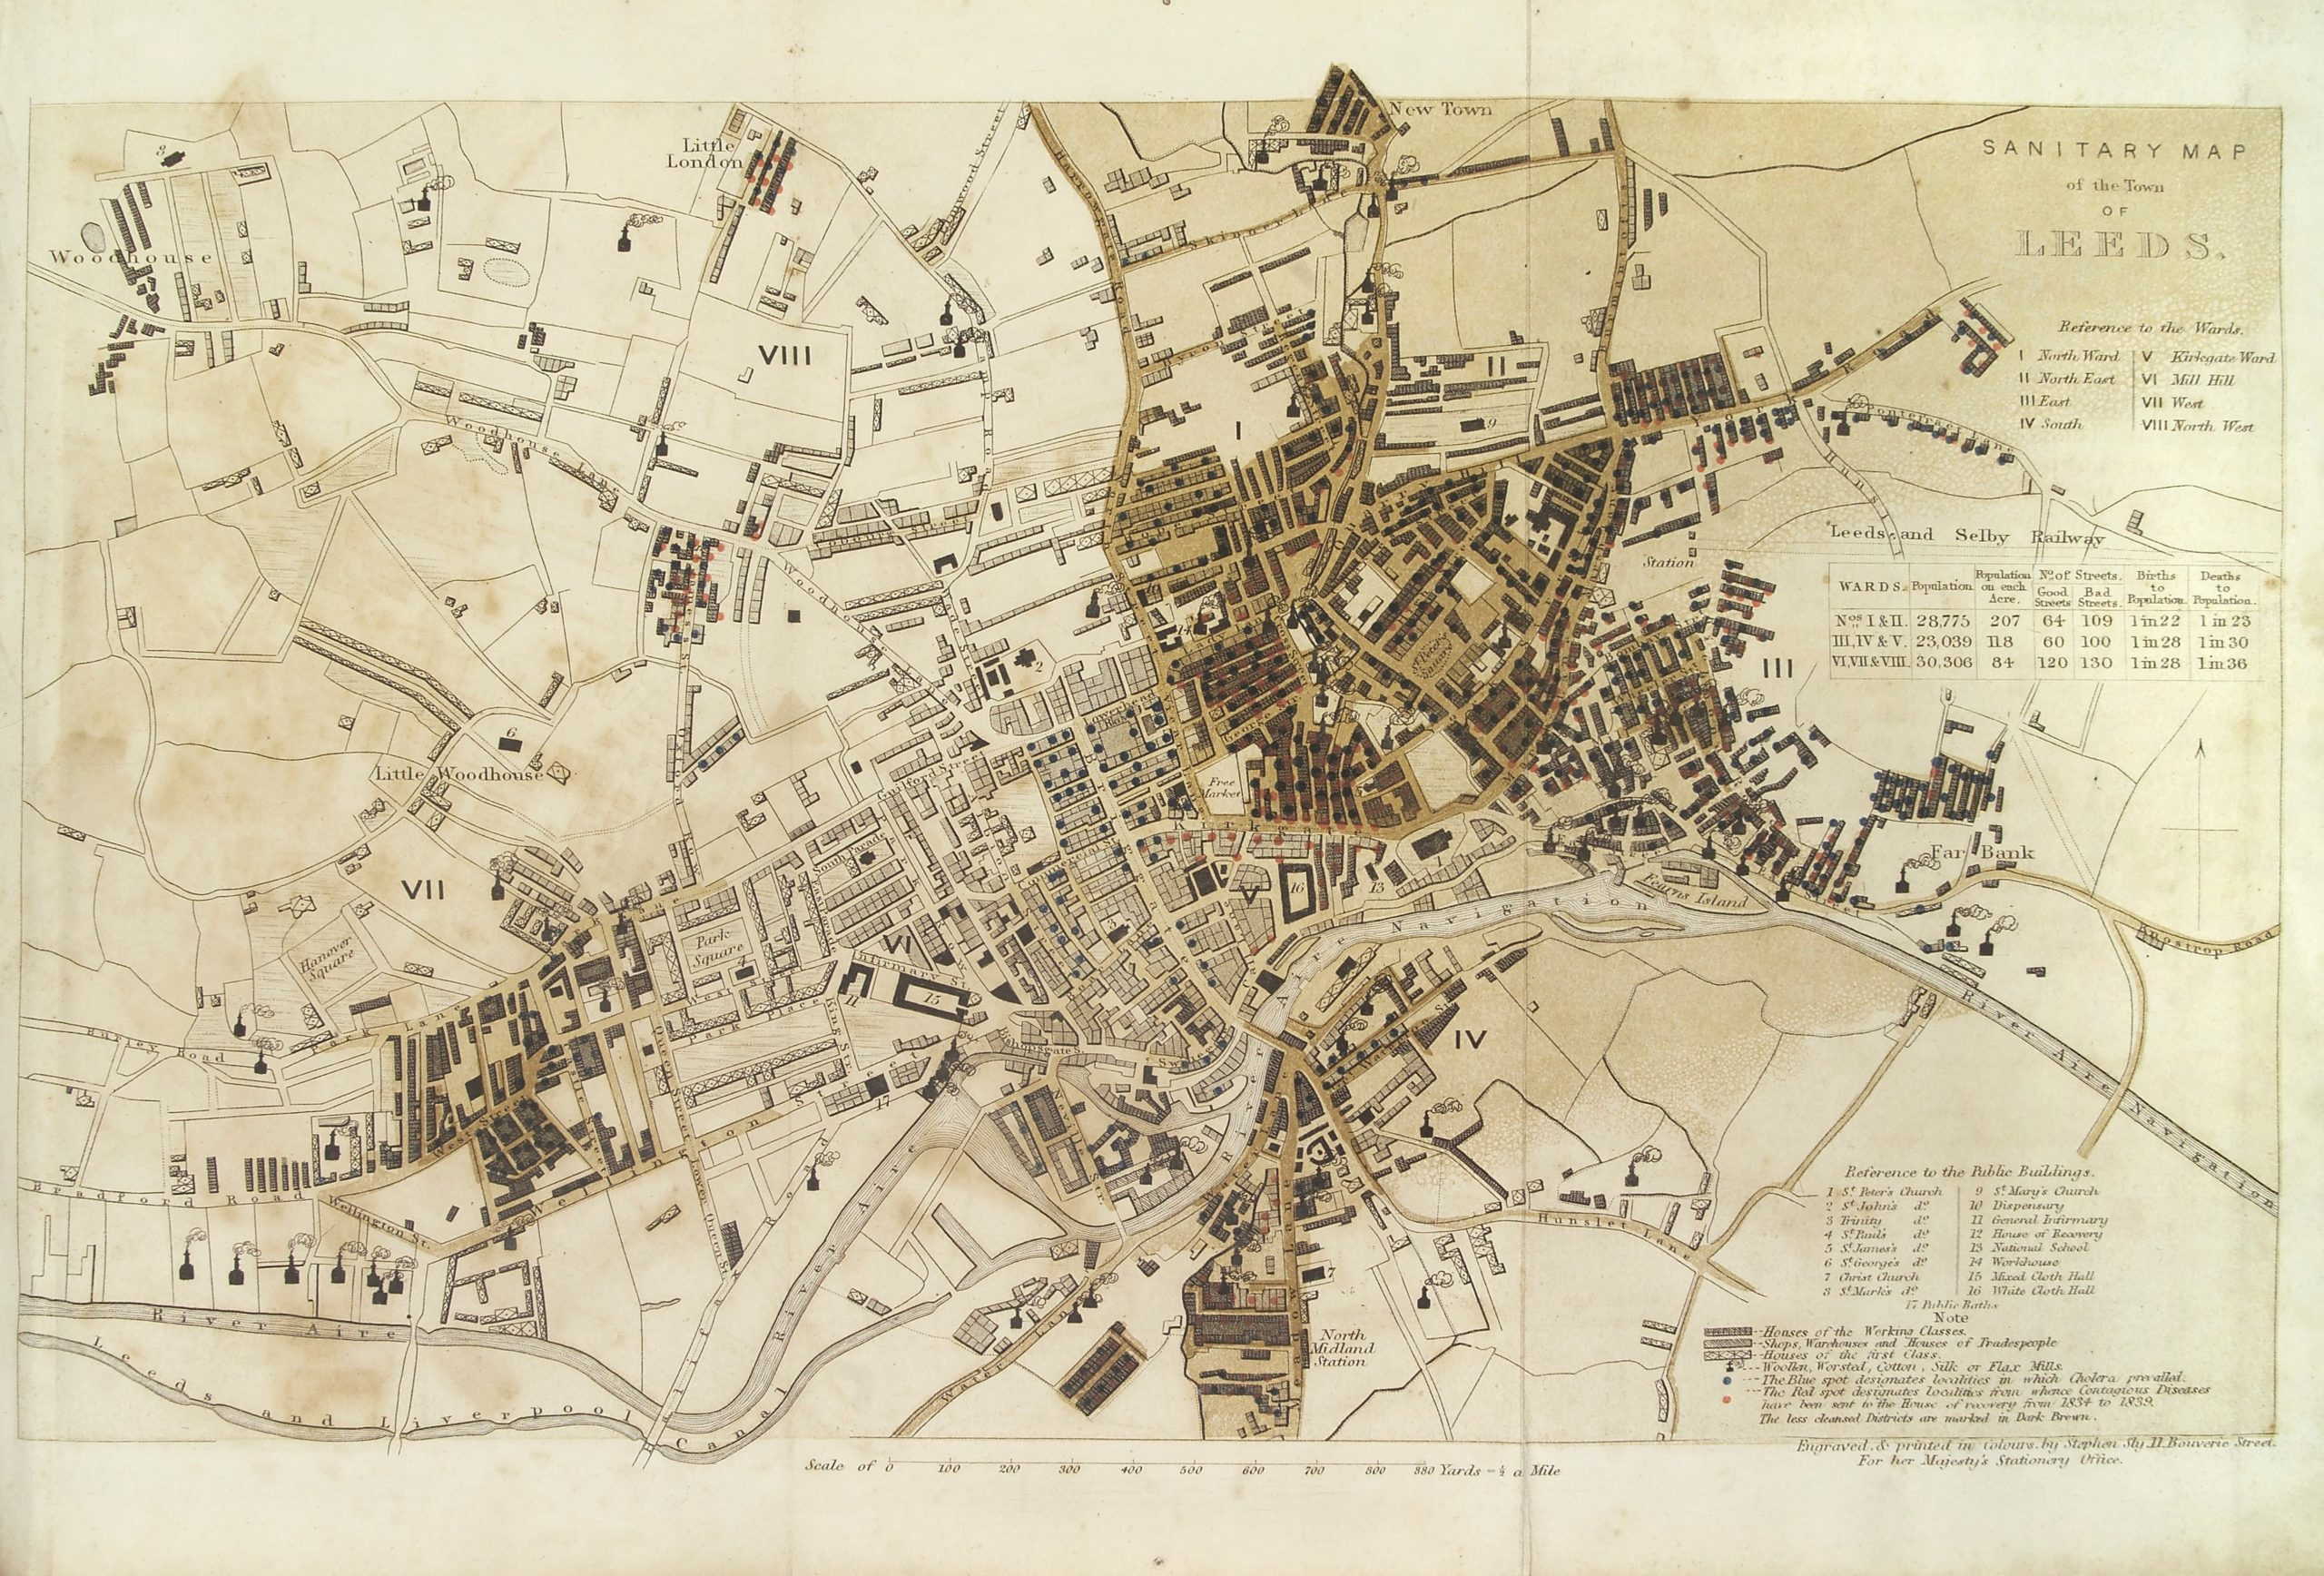 Map from 1800s